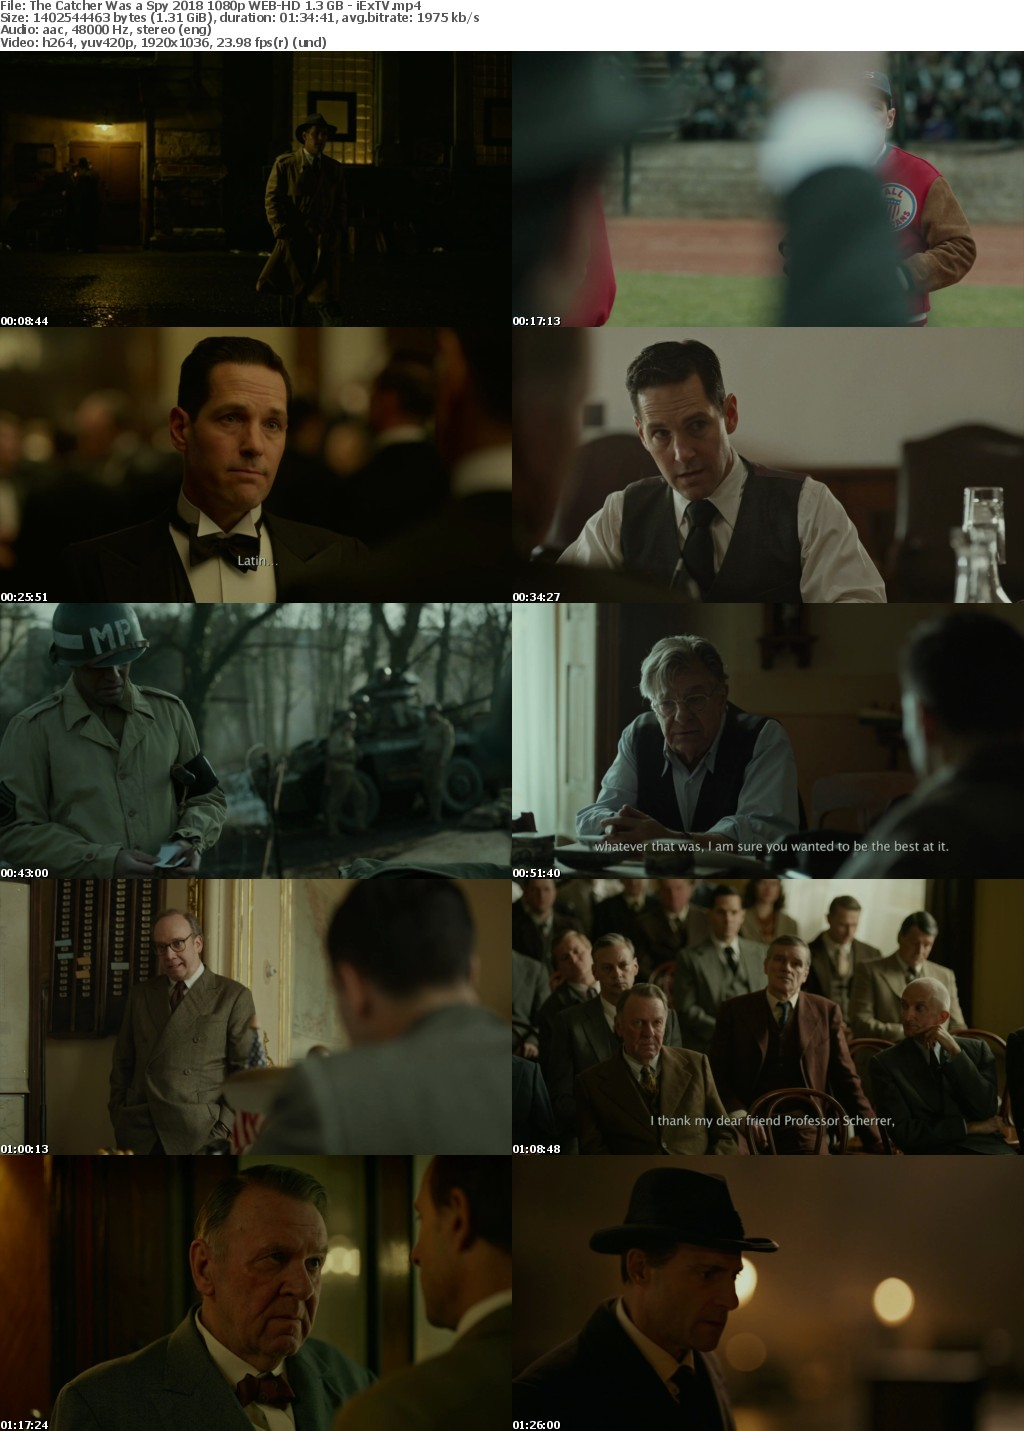 The Catcher Was a Spy (2018) 1080p WEB-HD 1 3 GB - iExTV